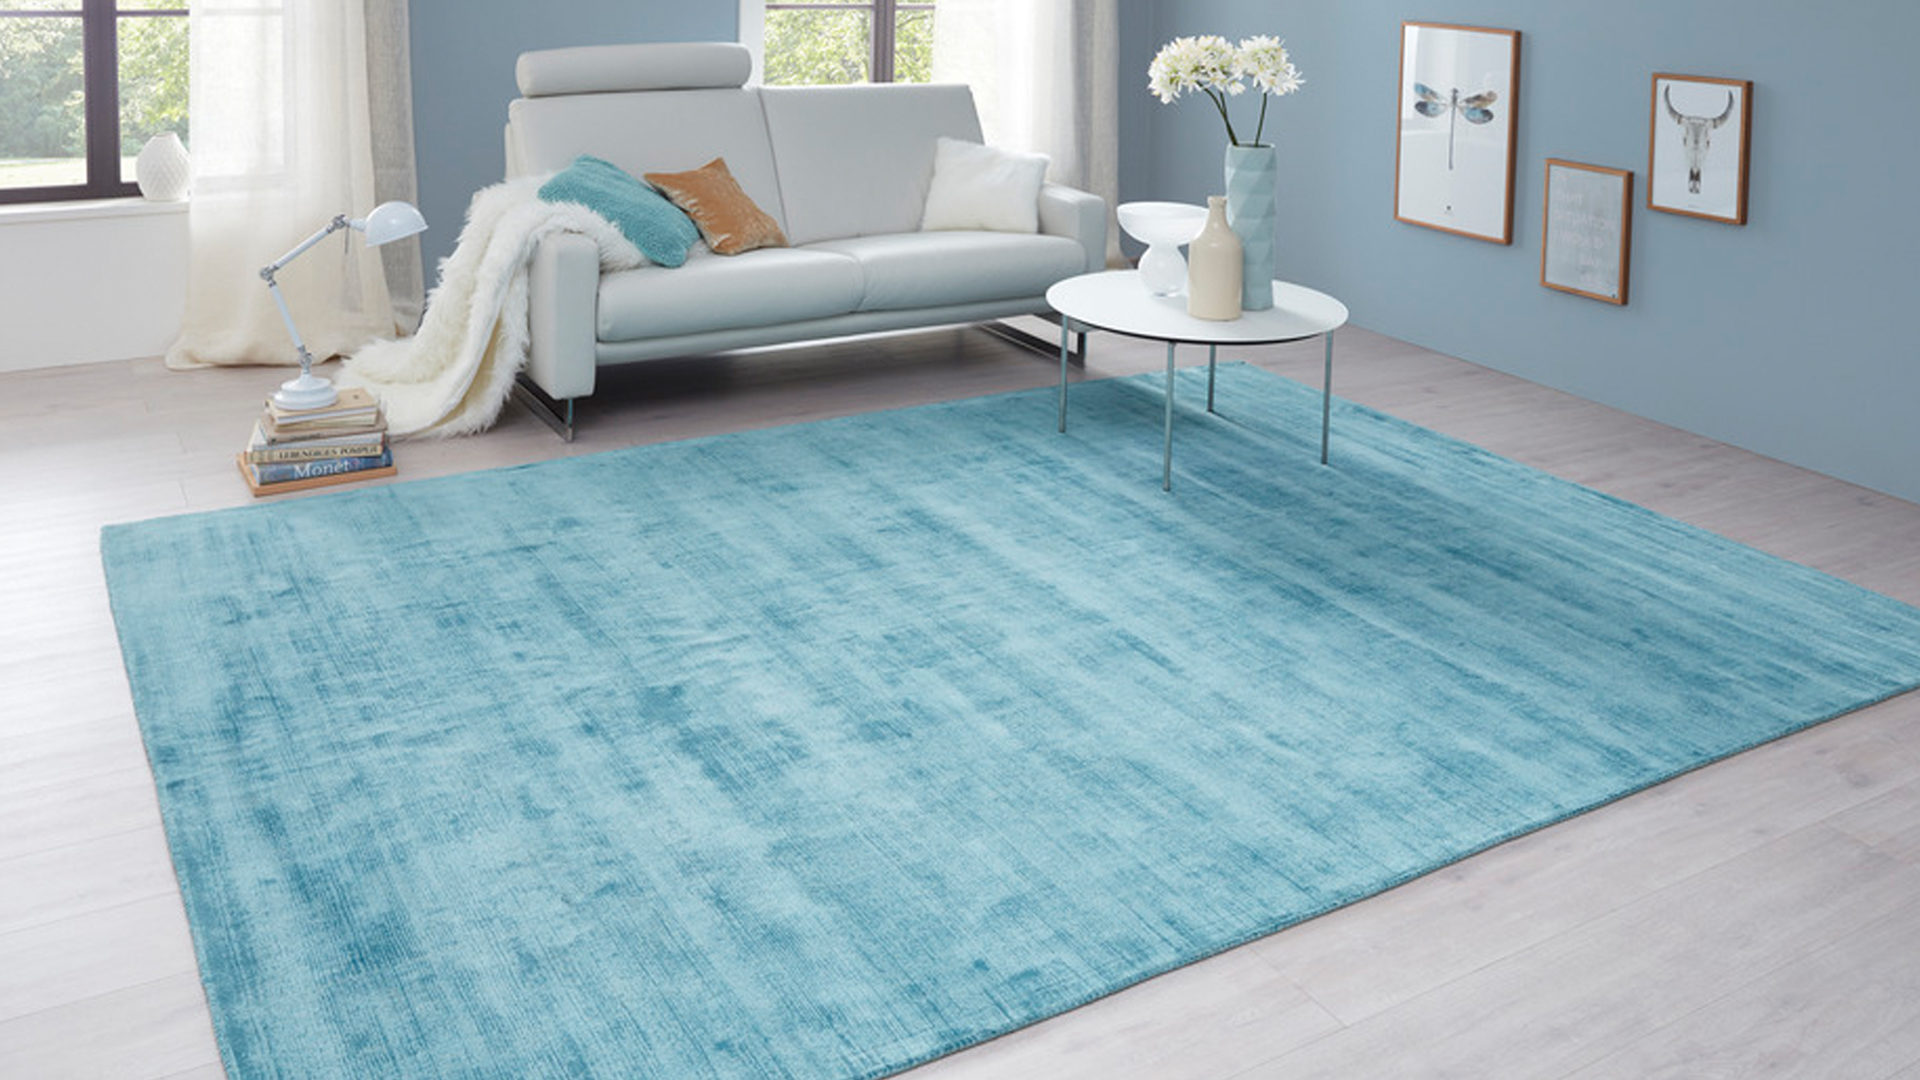 Handwebteppich Interliving aus Textil in Blau Interliving Teppich Serie A-8050 Türkisfarben – ca. 200 x 300 cm